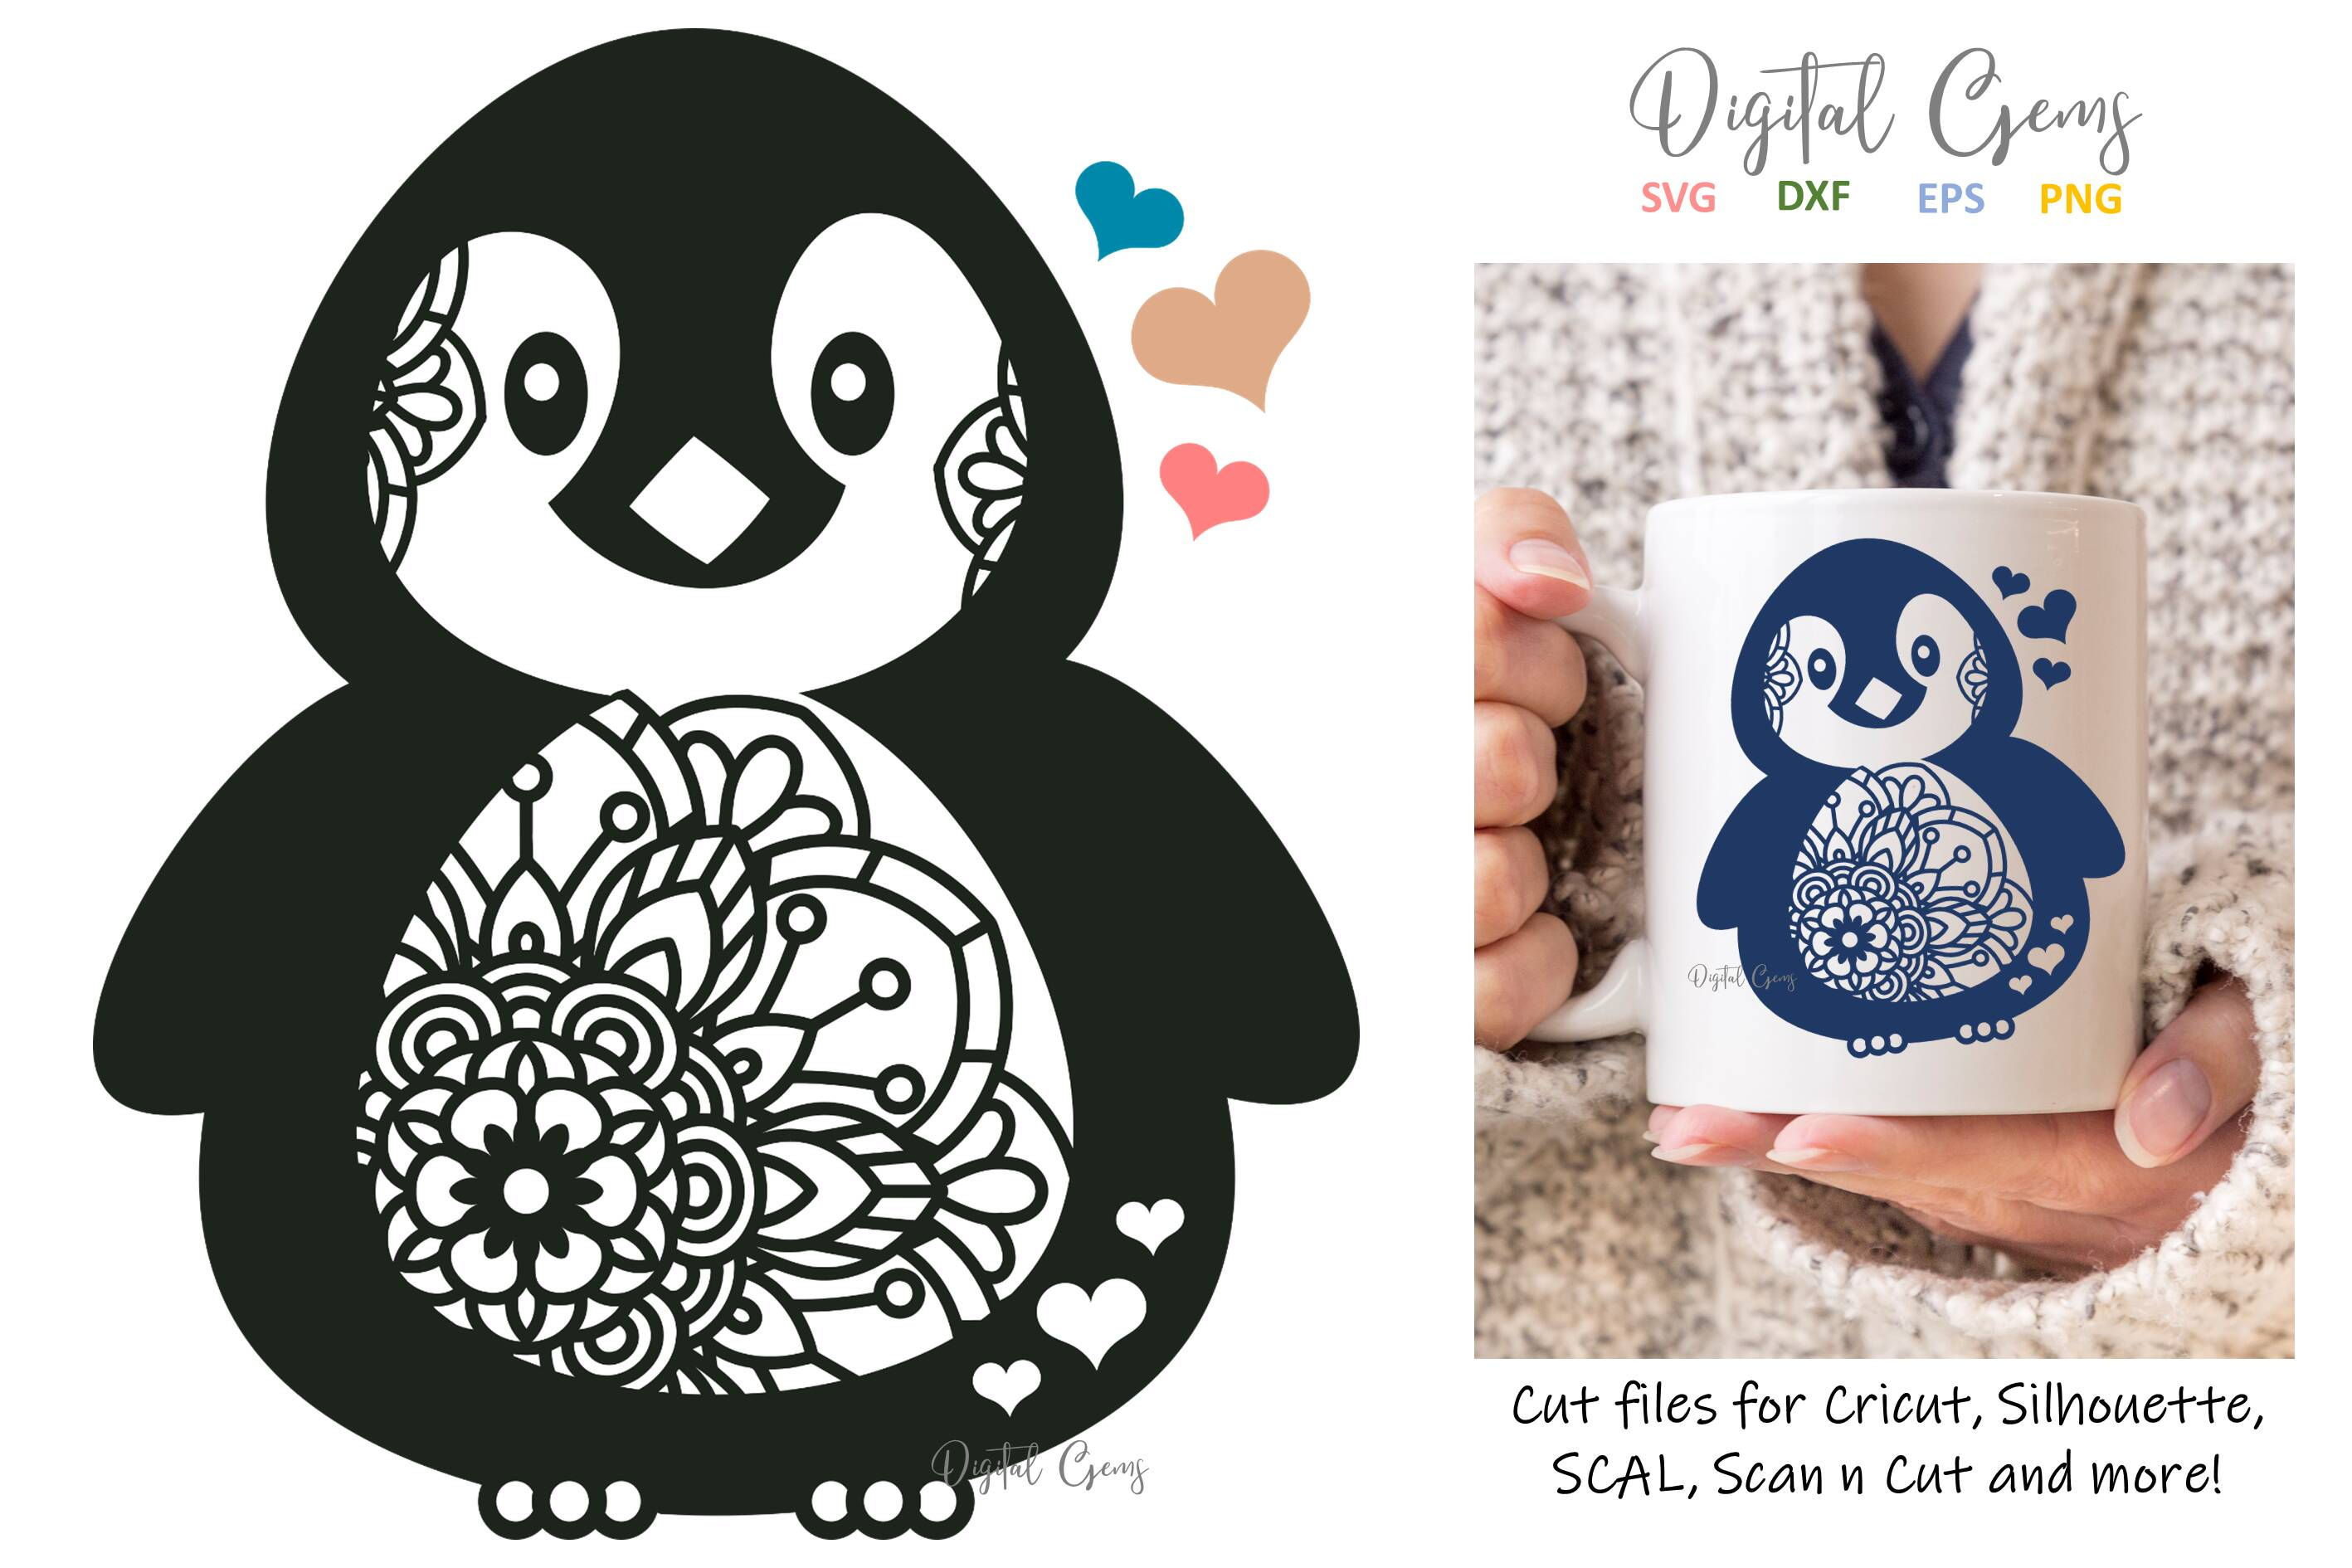 Download Free Penguin Design Graphic By Digital Gems Creative Fabrica for Cricut Explore, Silhouette and other cutting machines.